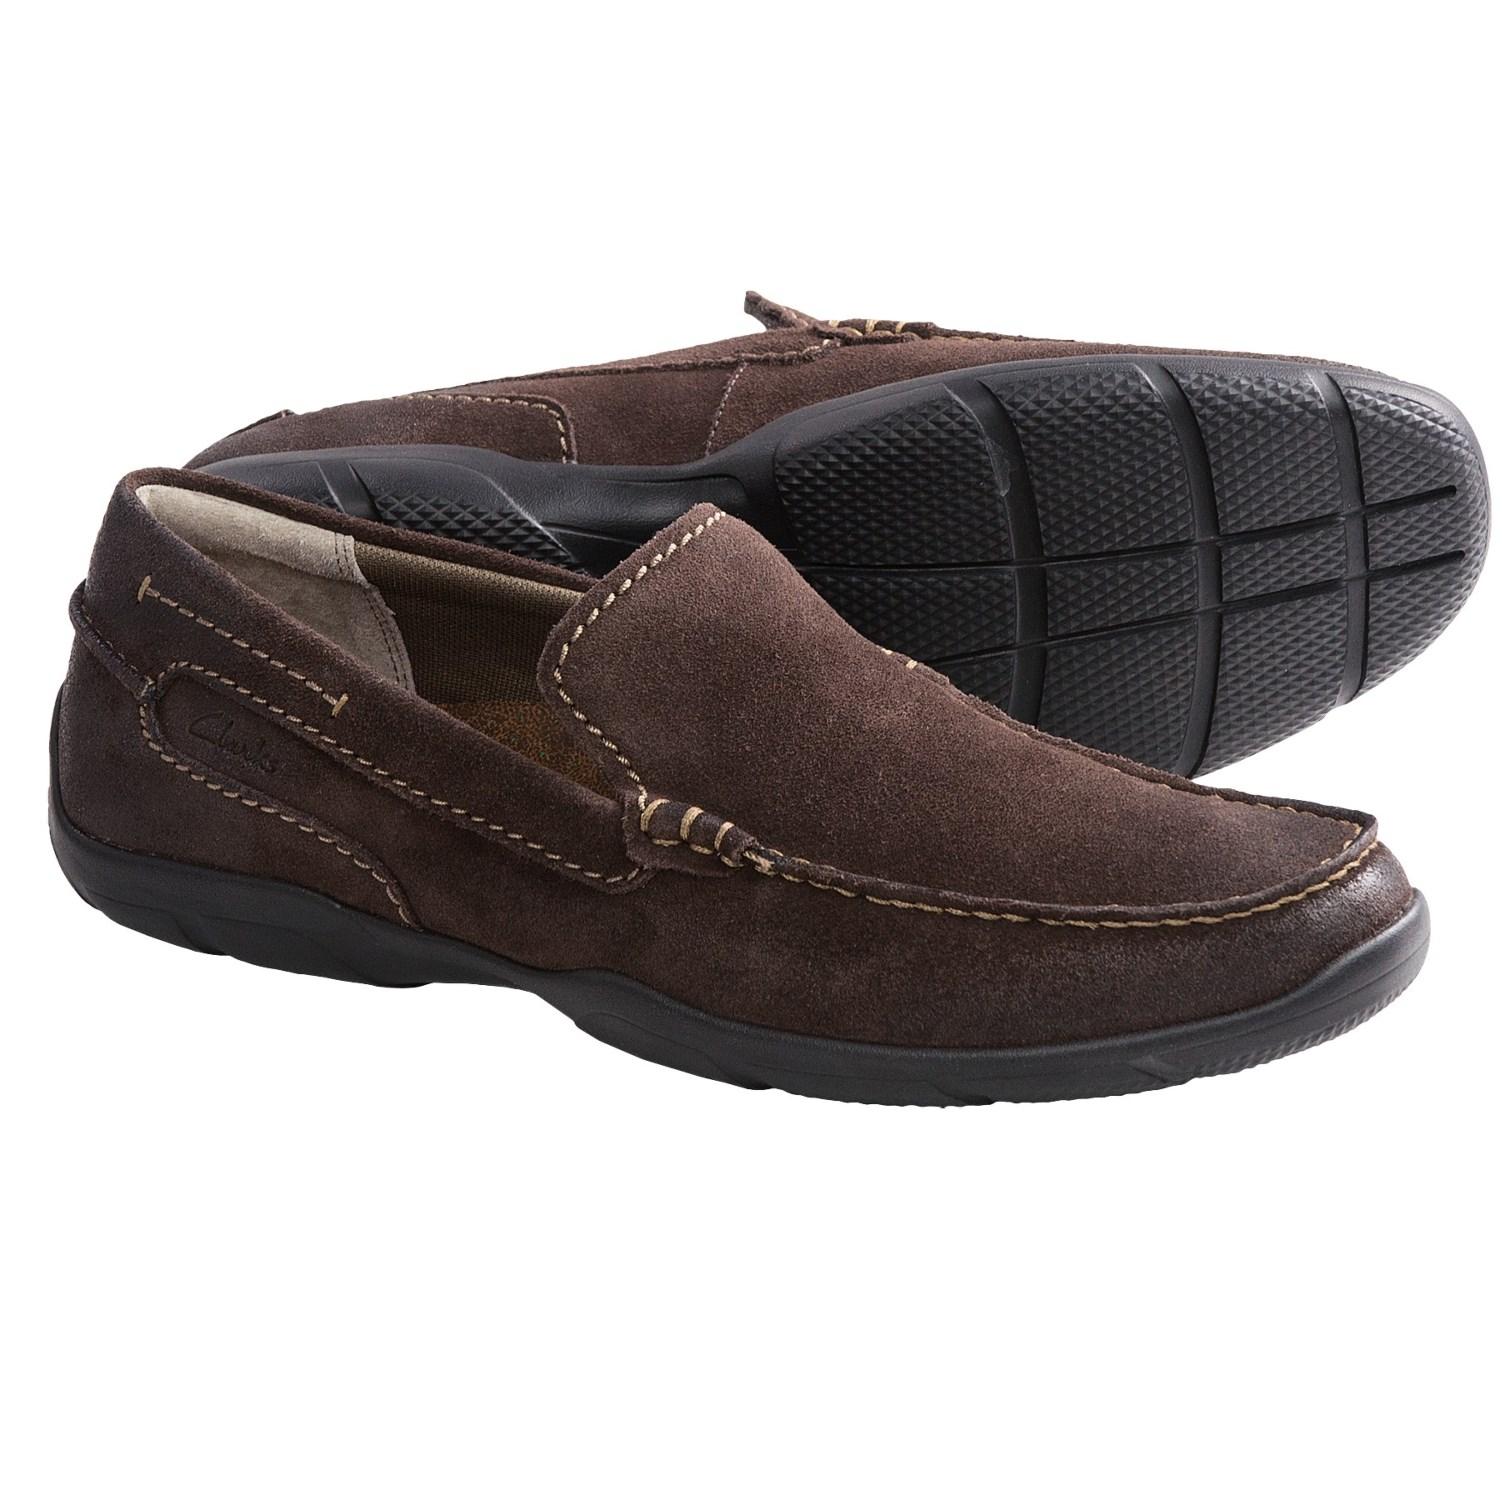 Clarks Ramiro Loafer Shoes - Suede (For Men) in Brown Suede